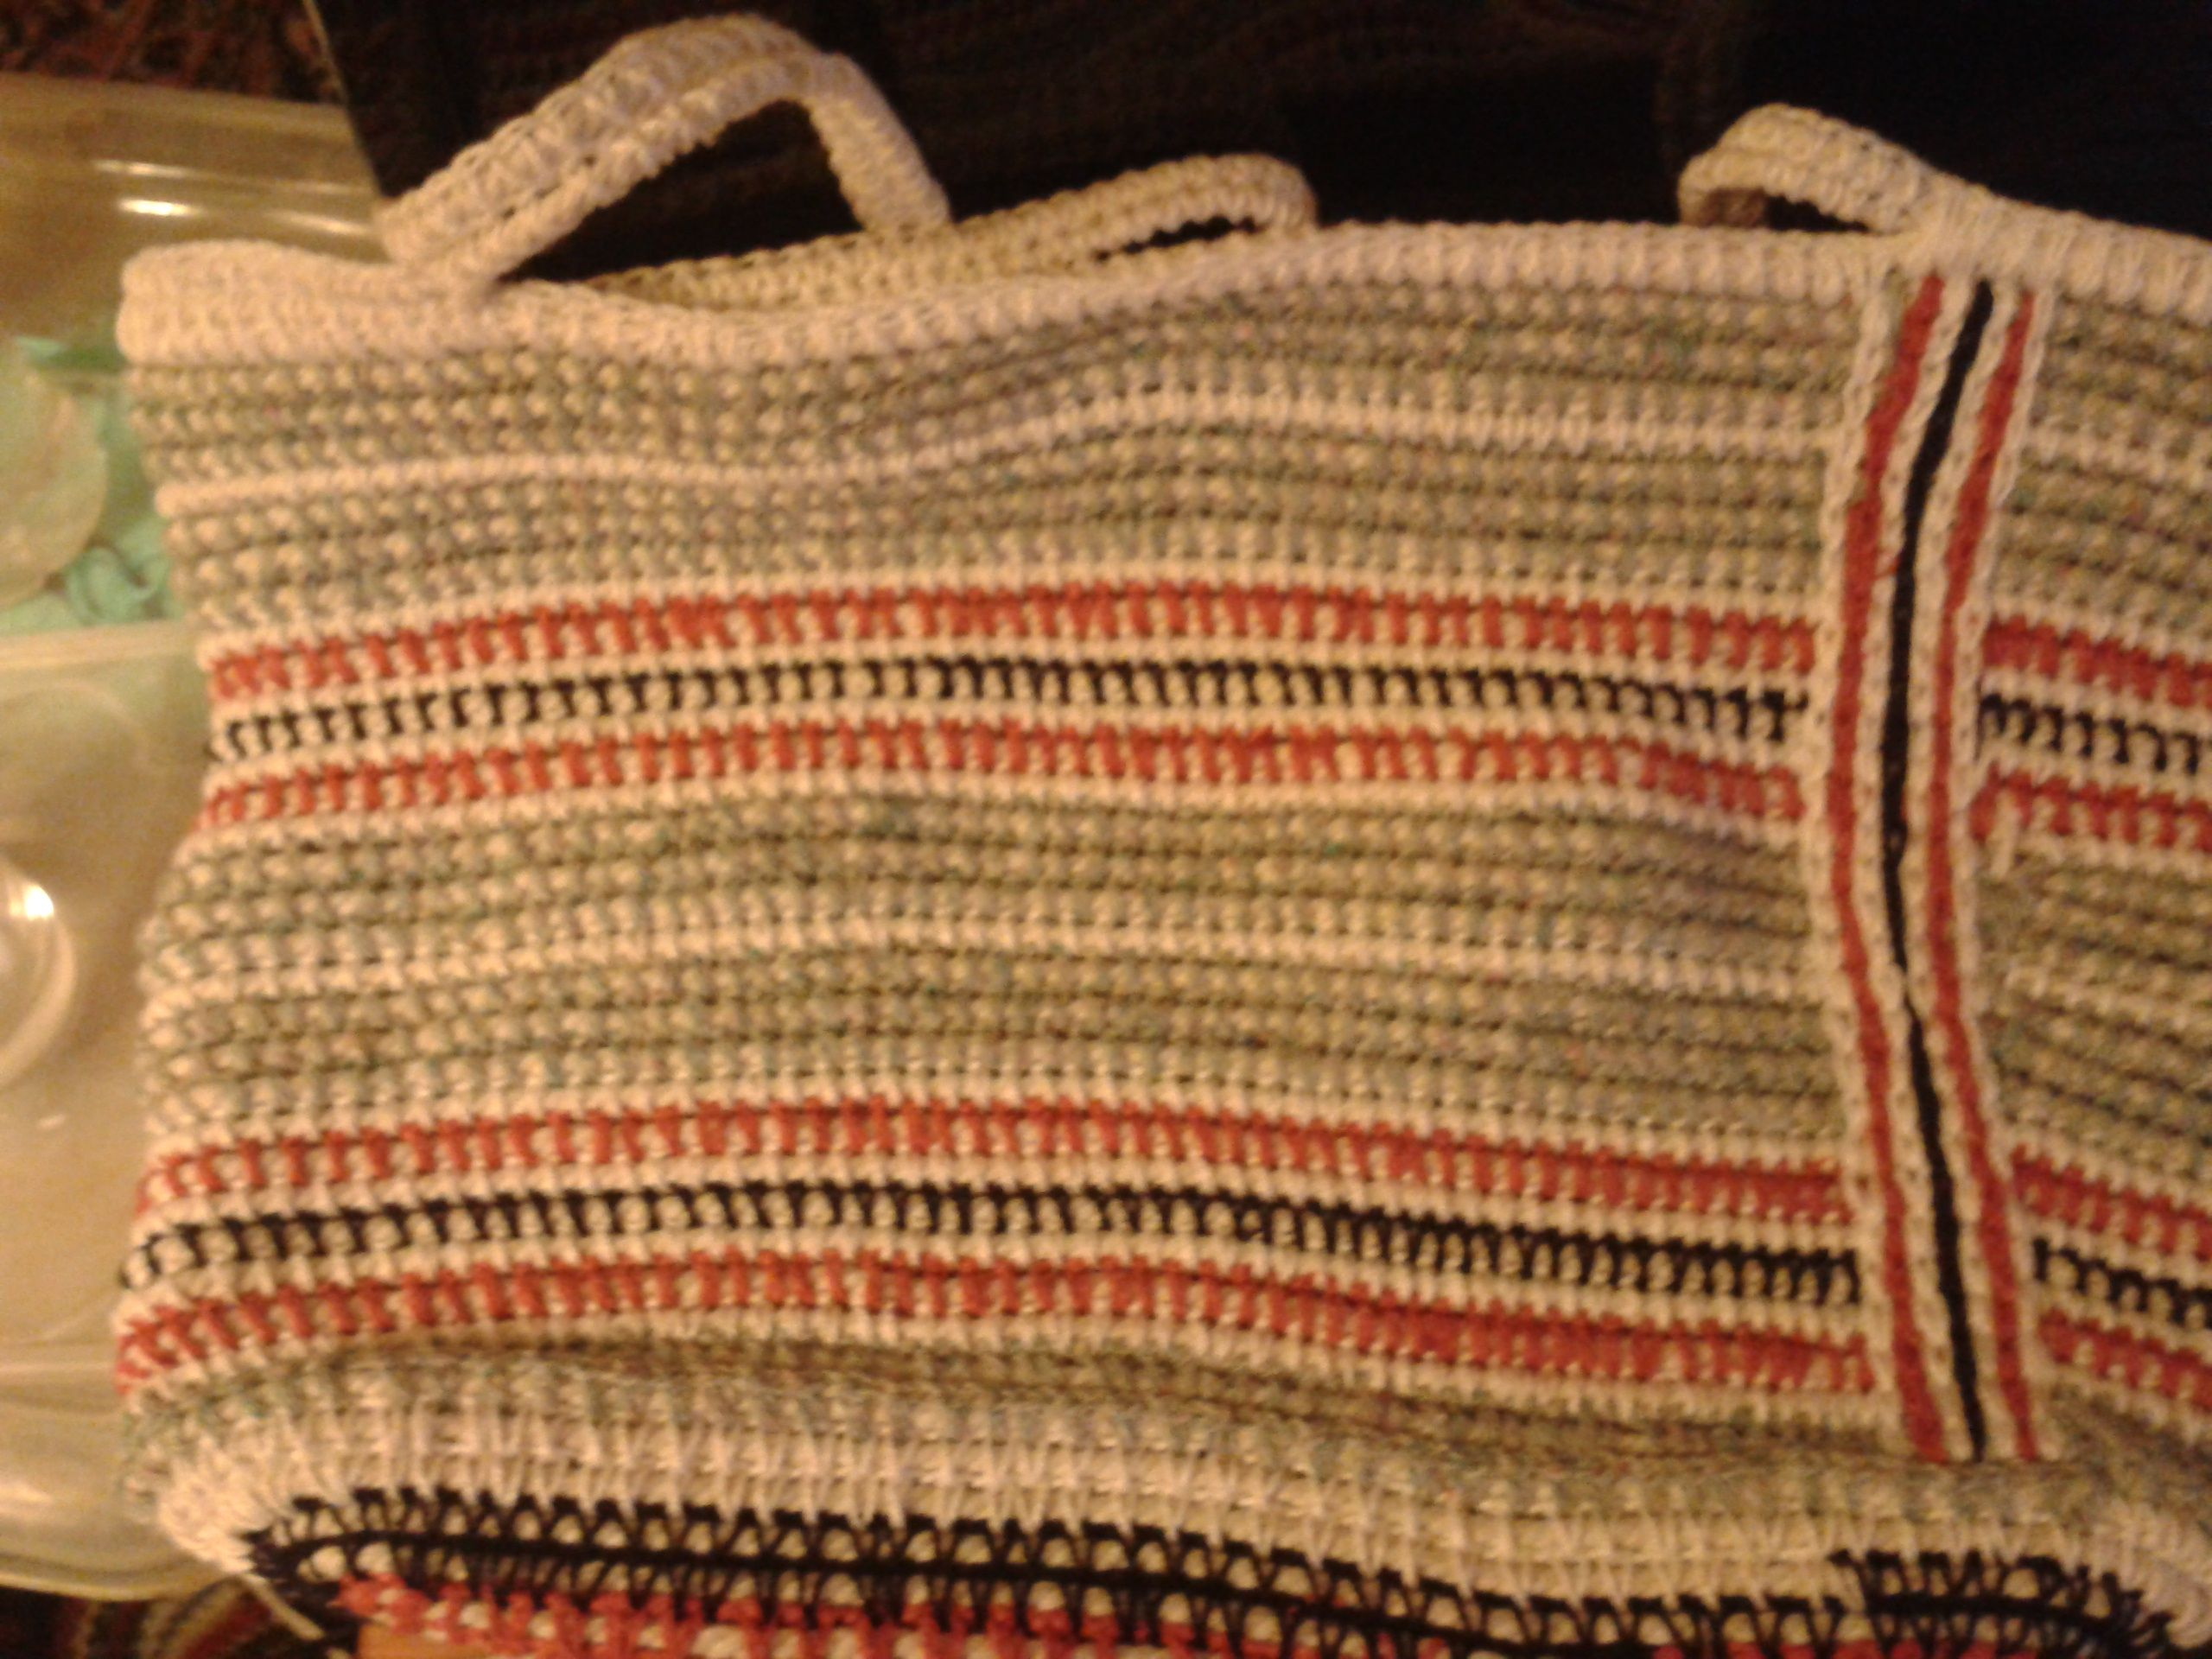 I made this bag by crocheting over 6mm piping cord and then continuing round going over more cord into the stitches below It makes a very strong but flexible fabric.